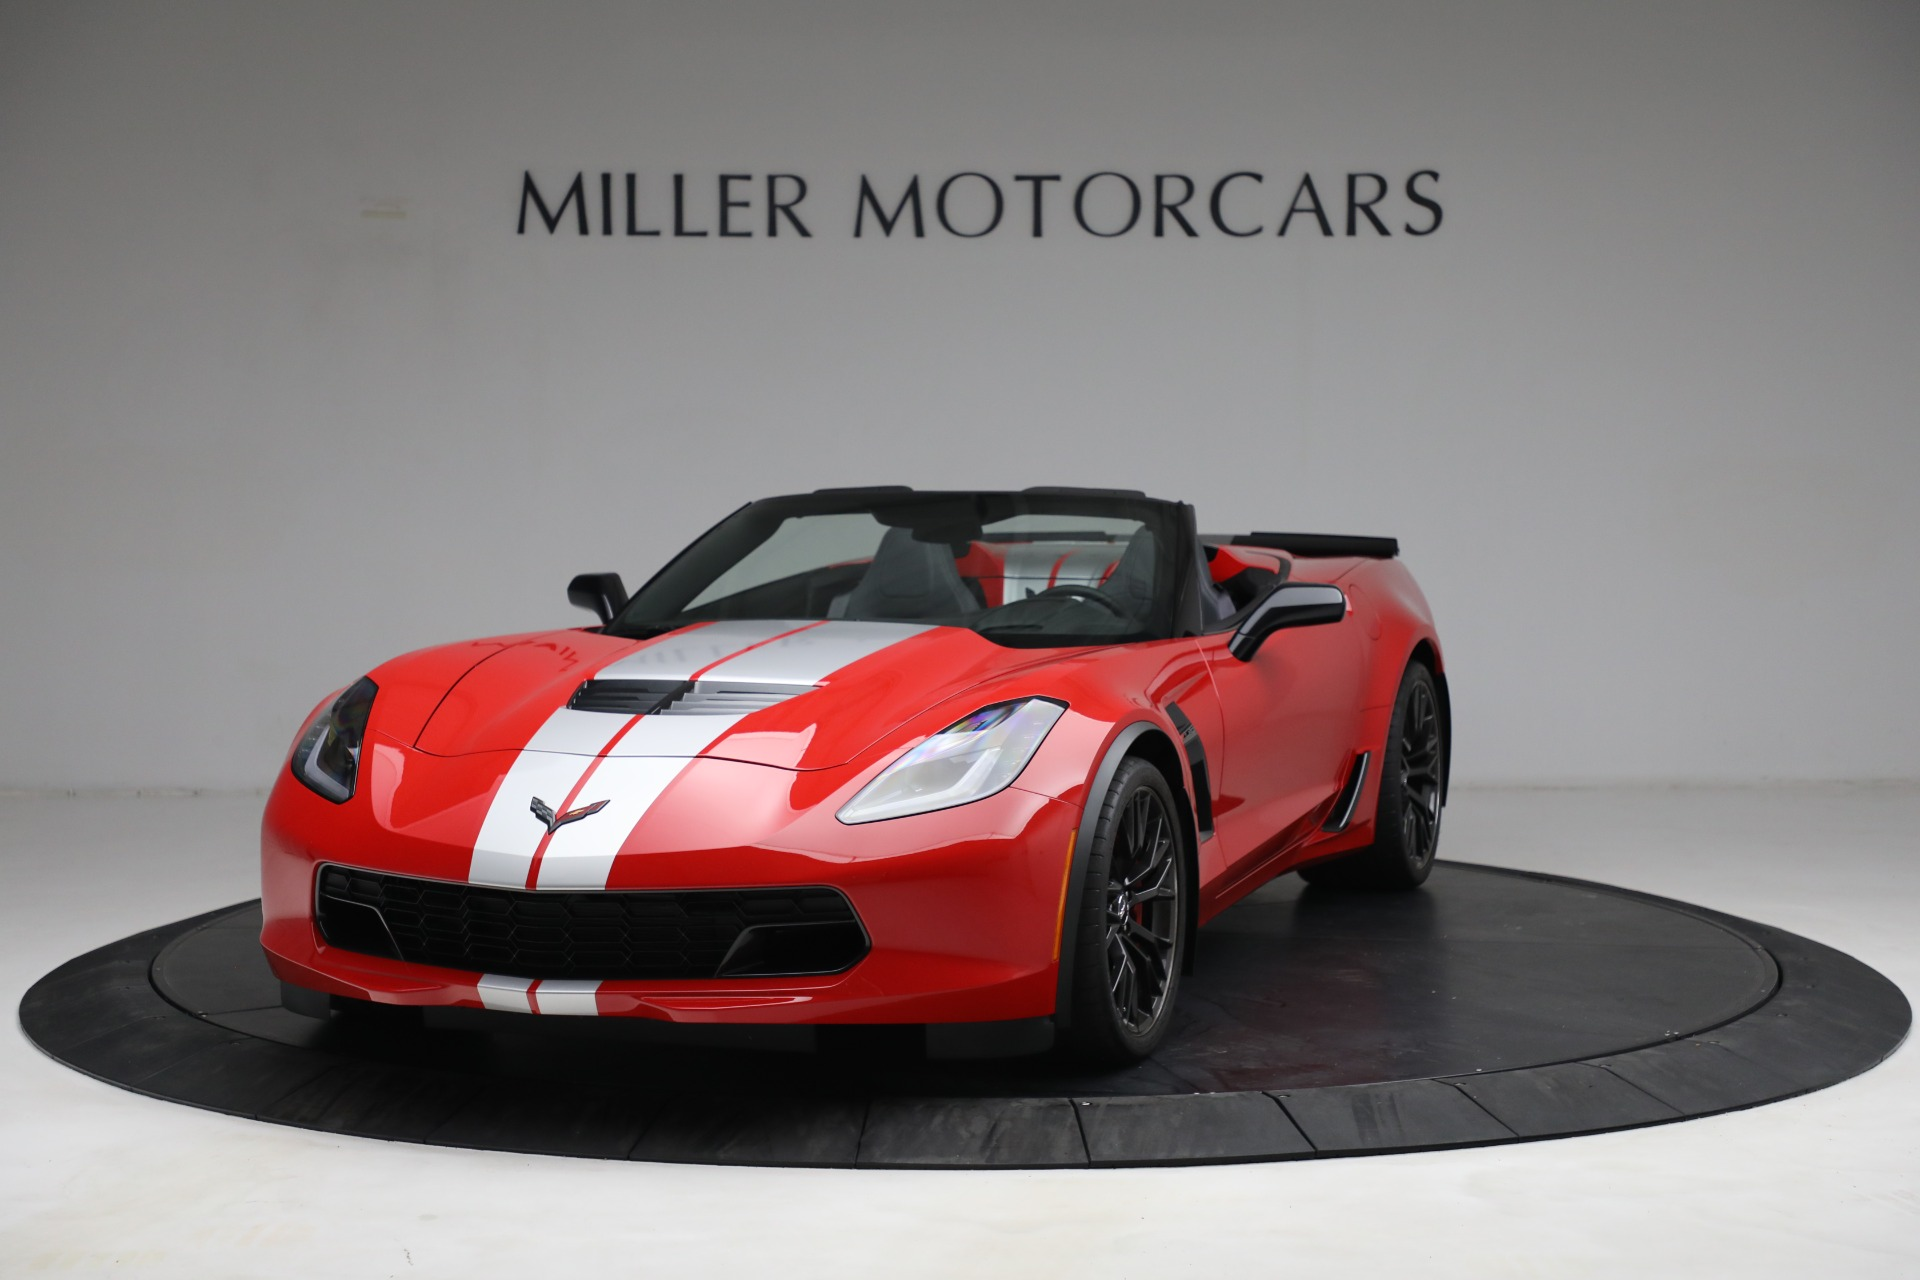 Used 2015 Chevrolet Corvette Z06 for sale $89,900 at Bentley Greenwich in Greenwich CT 06830 1